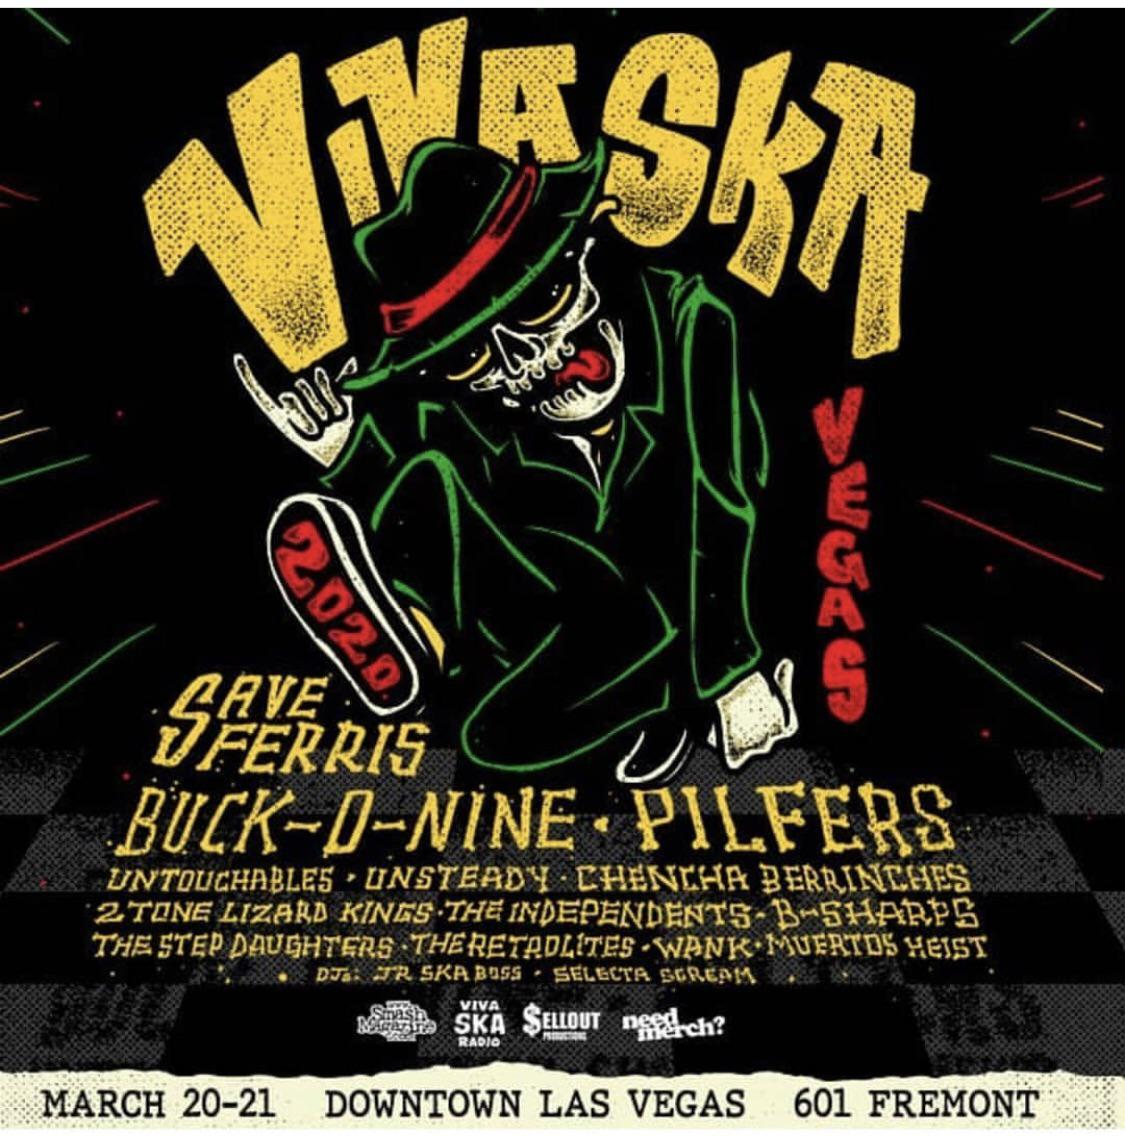 Viva Ska Vegas Returns to Downtown Las Vegas with Save Ferris, Buck-O-Nine and More March 20 & 21, 2020